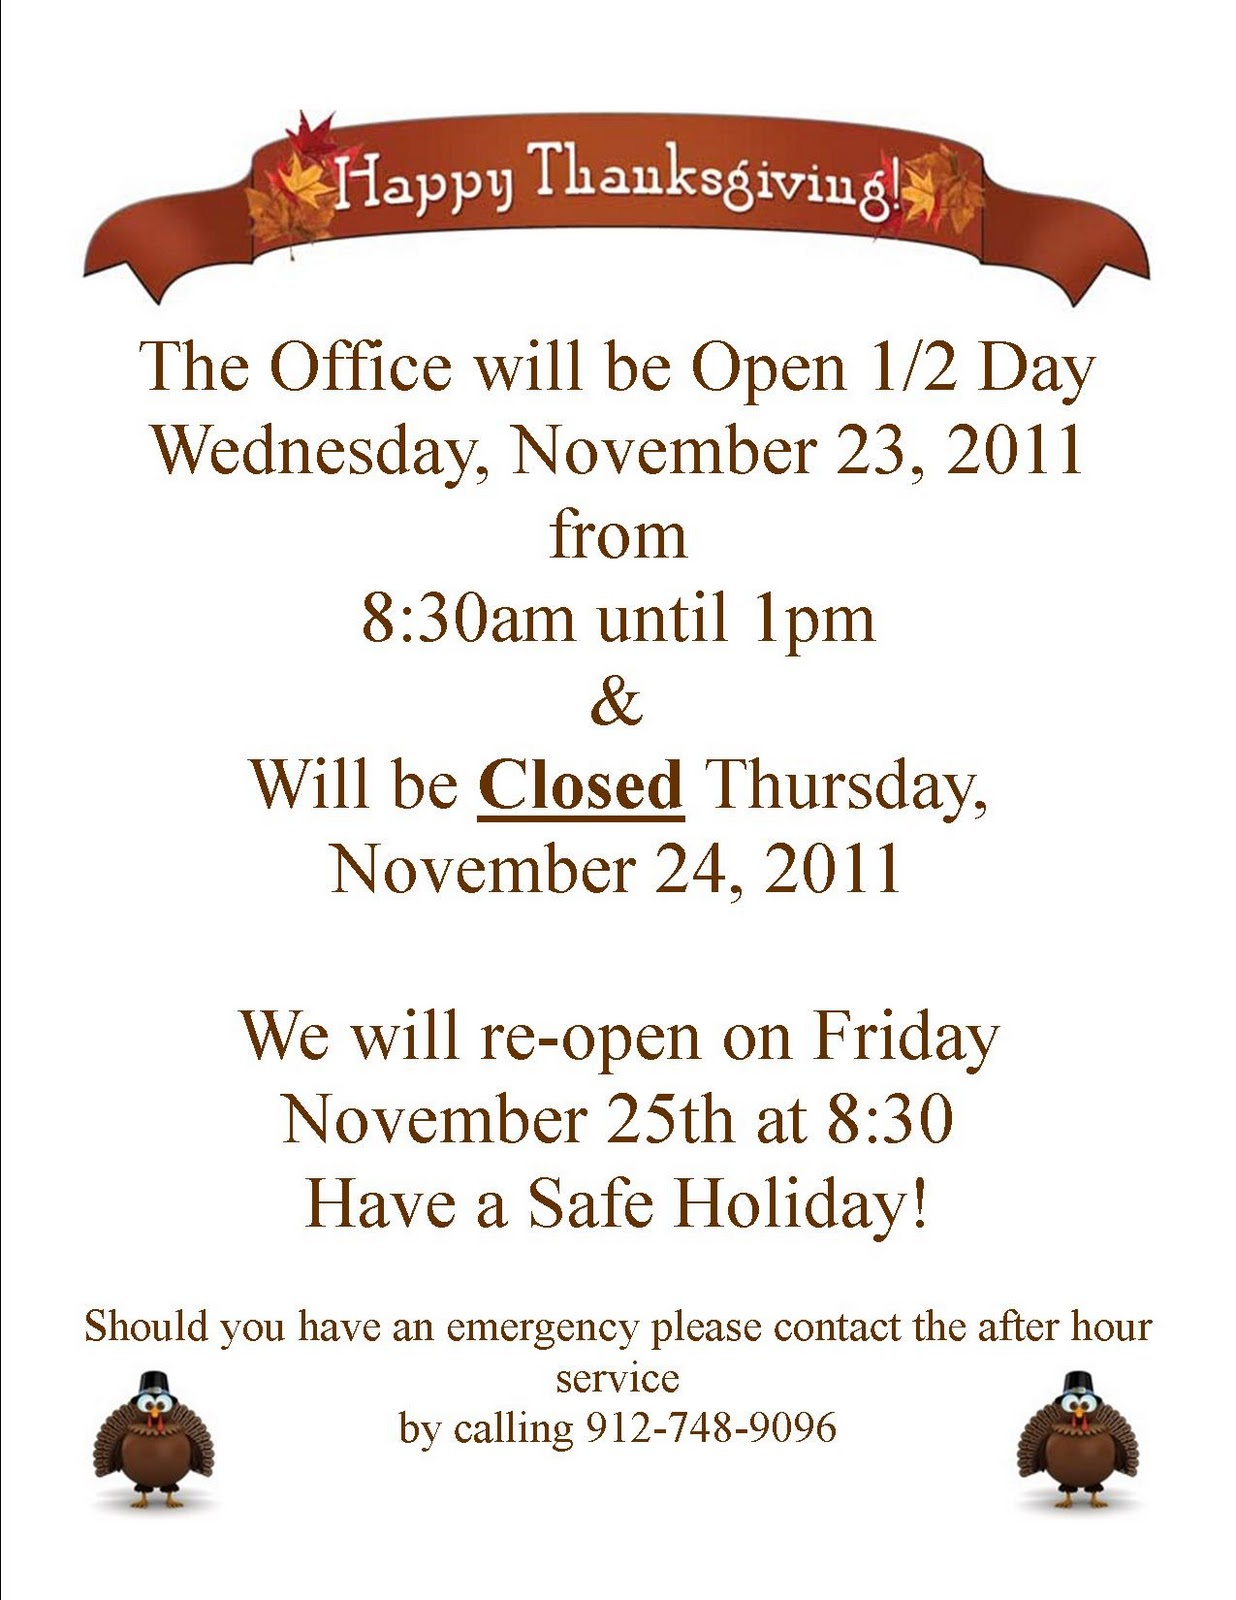 Watch more like Office Closure Signs For Holidays